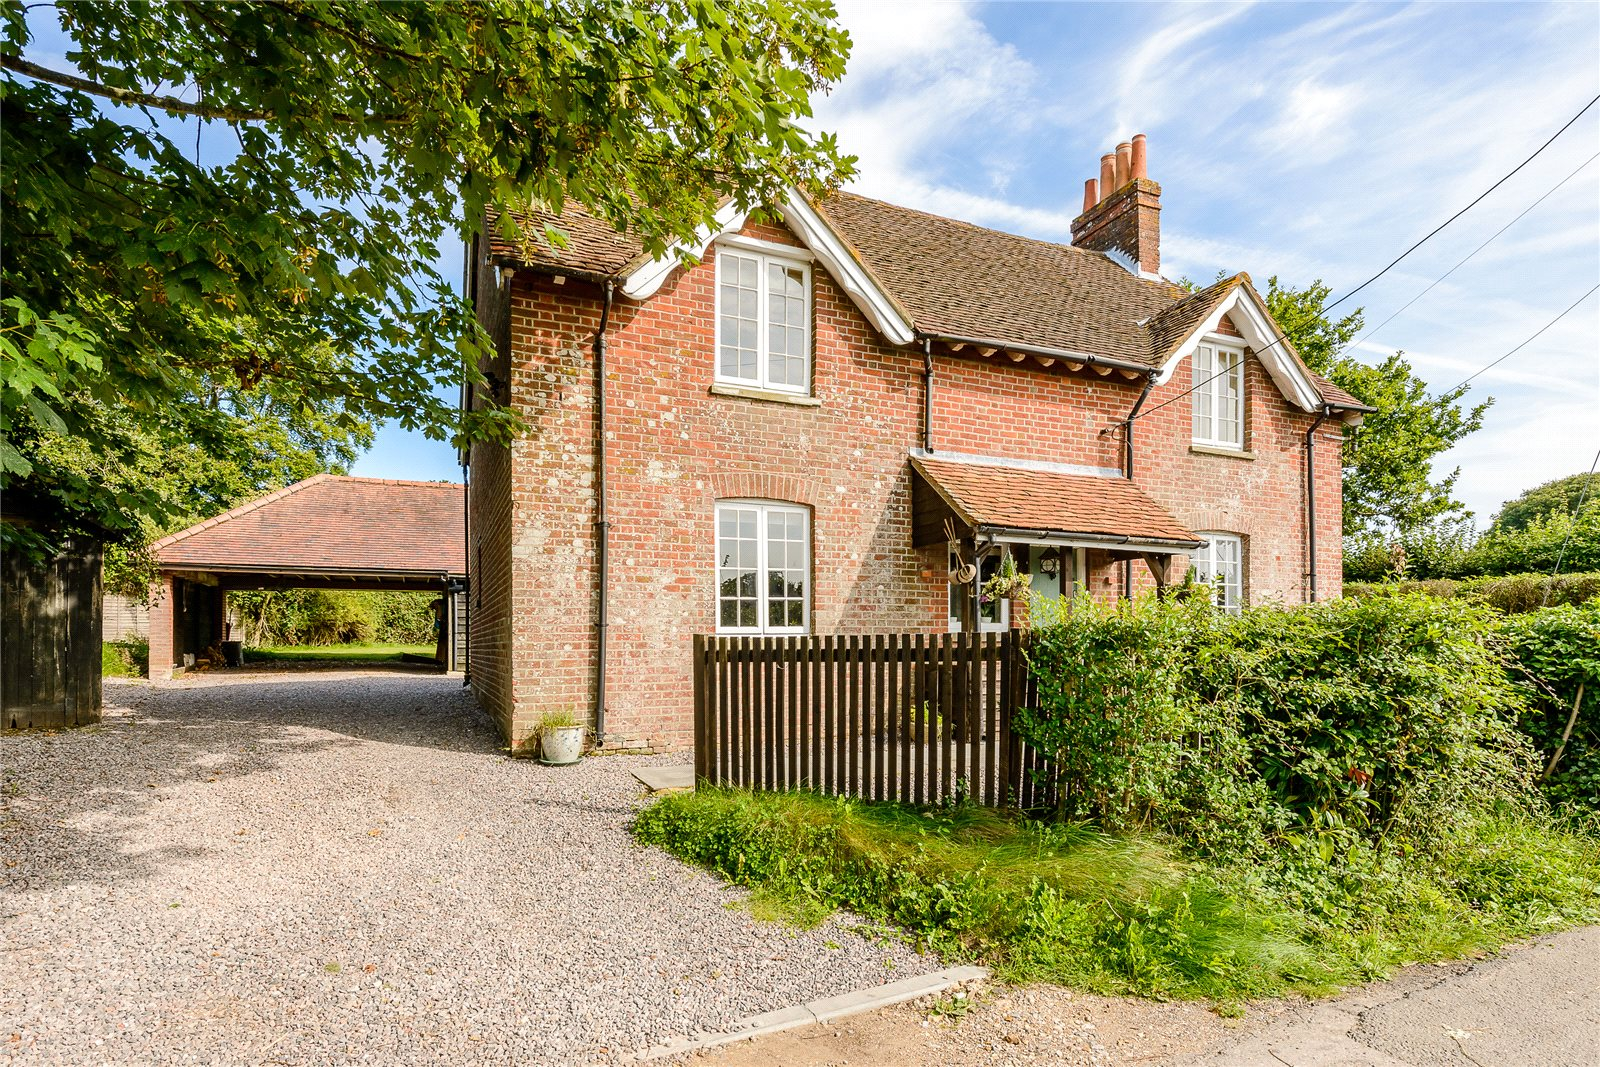 Maison unifamiliale pour l Vente à Well Lane, Swanmore, Hampshire, SO32 Swanmore, Angleterre